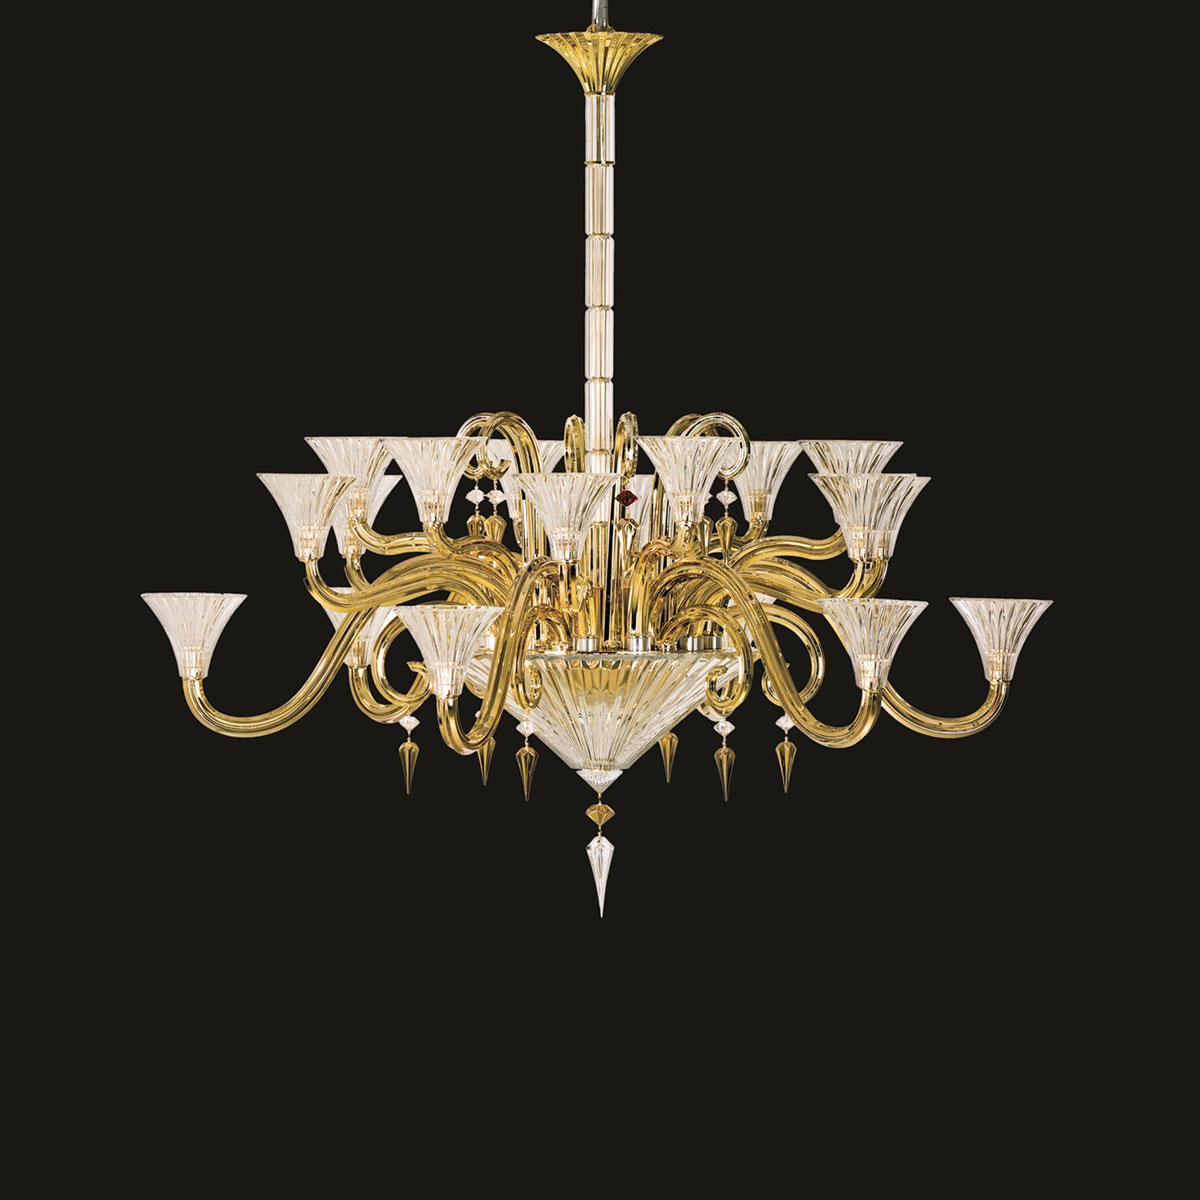 Baccarat Crystal, Mille Nuits Gold D